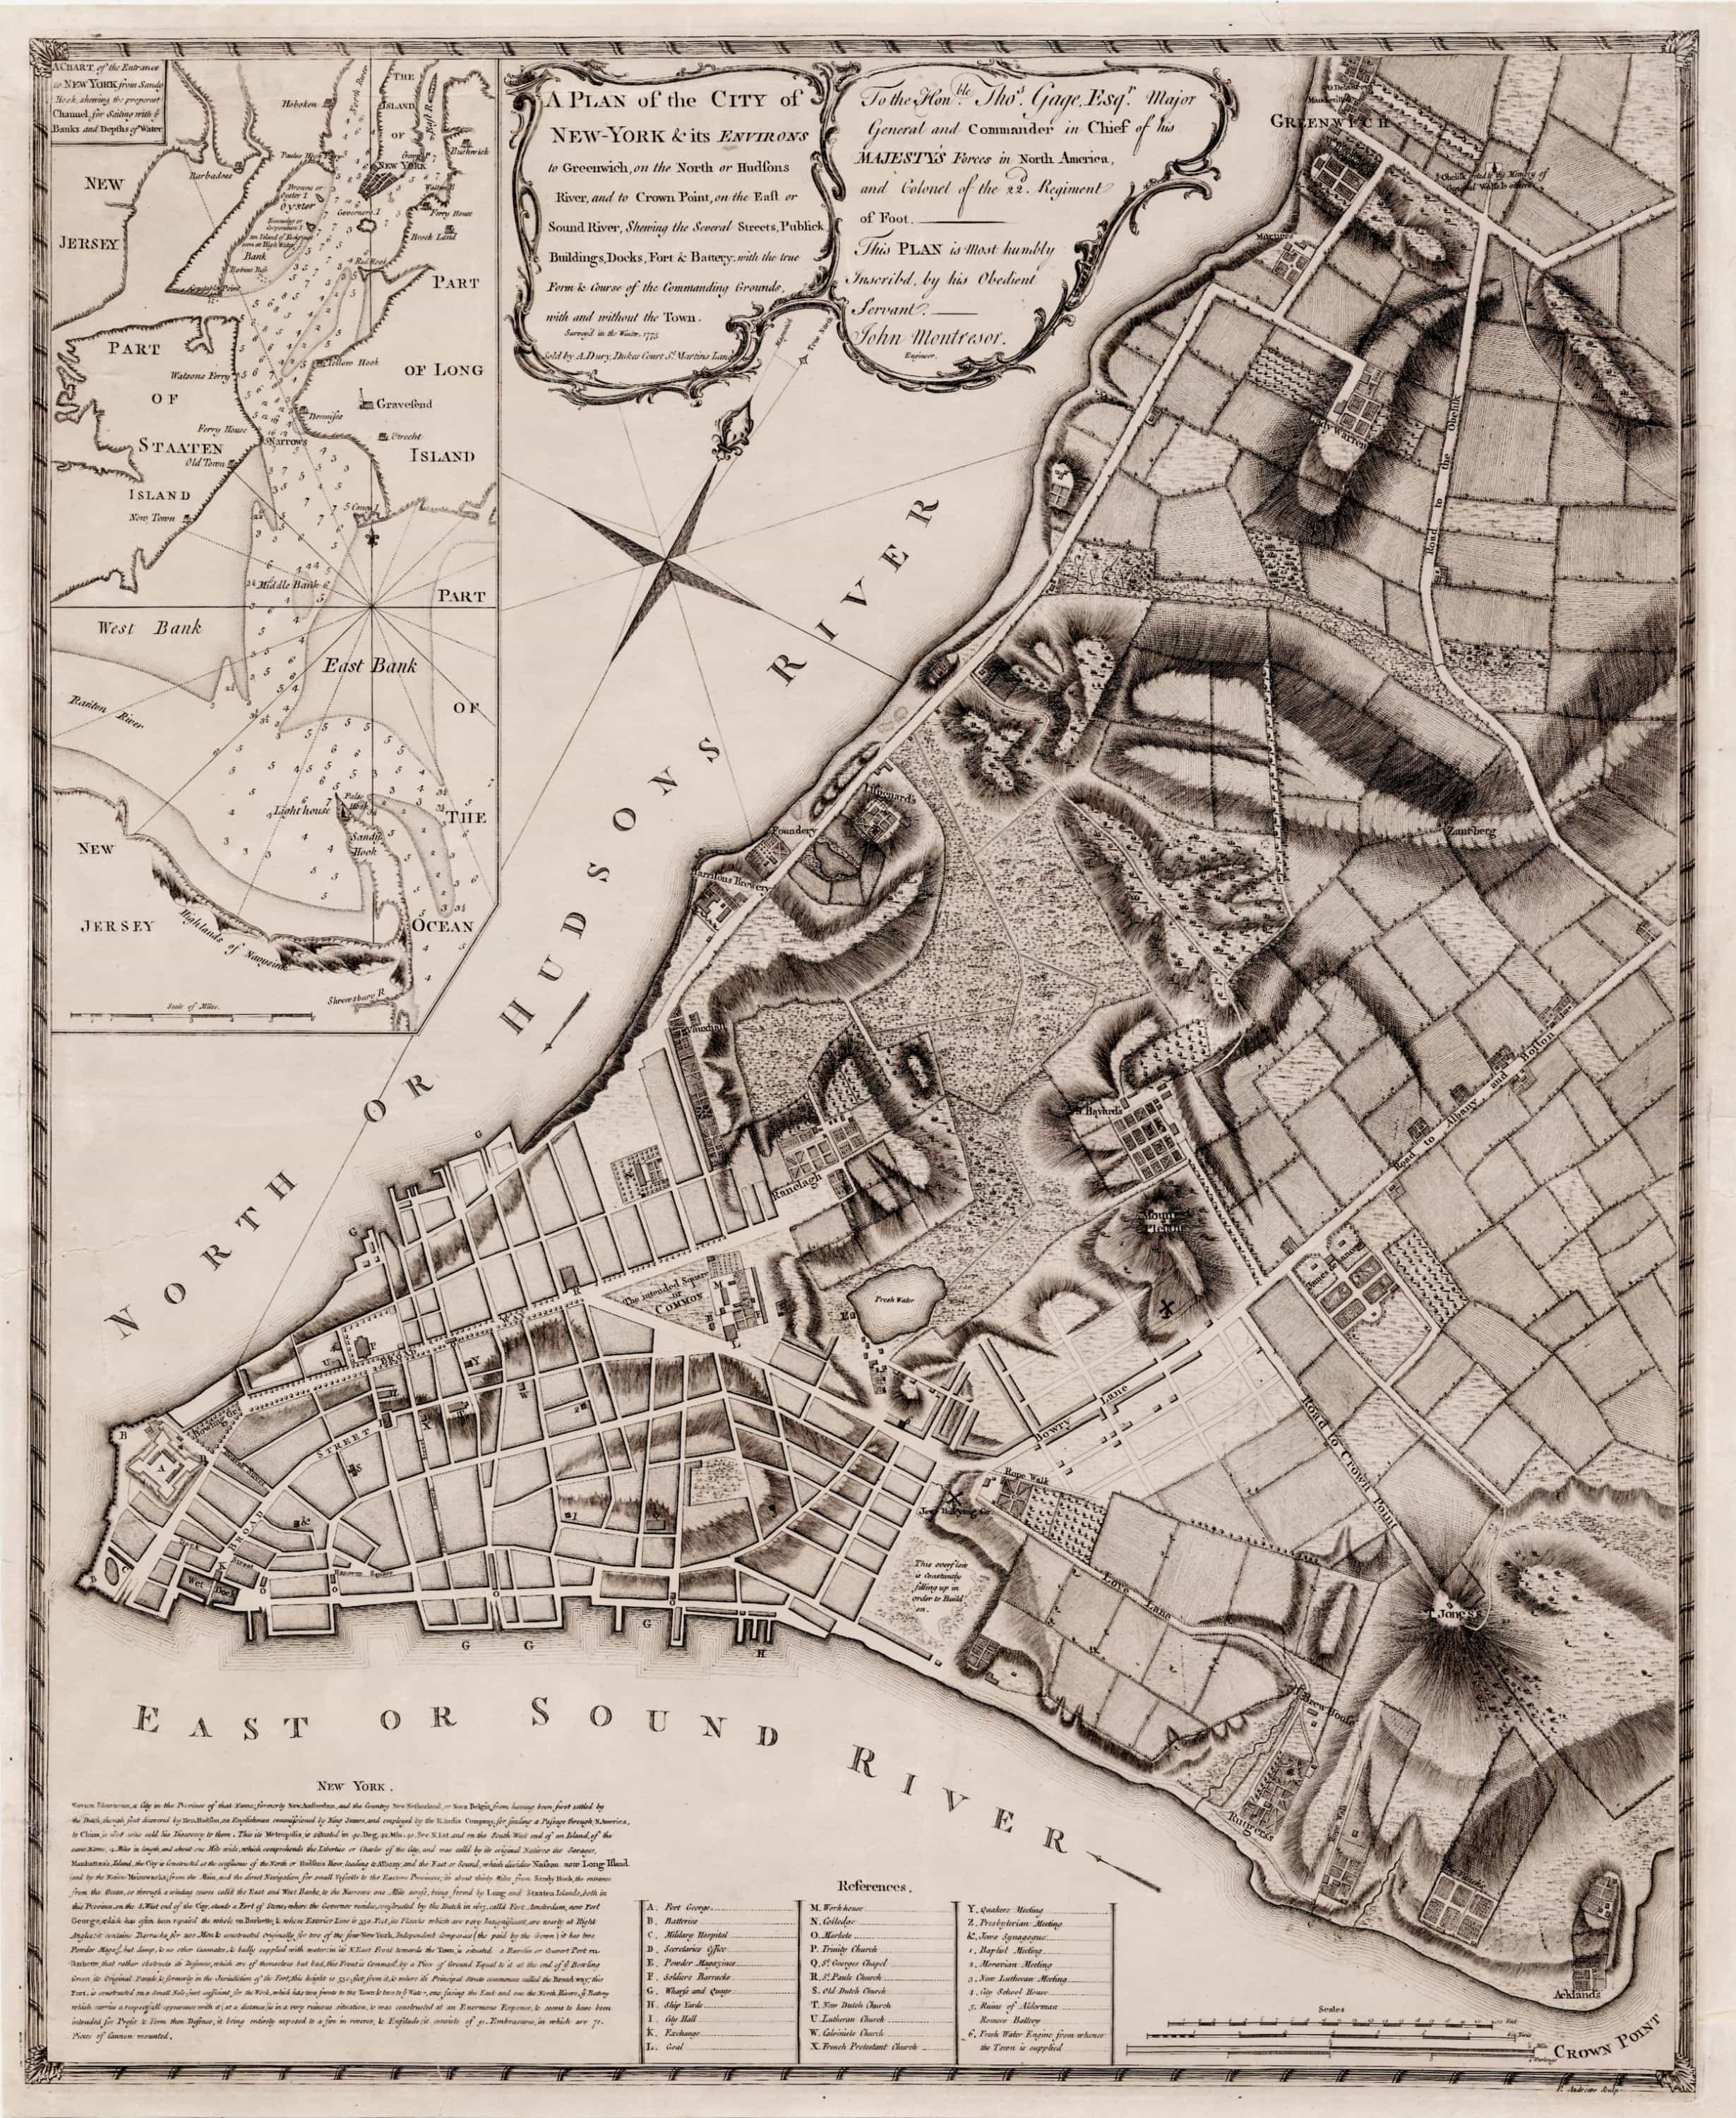 montresors map of manhattan